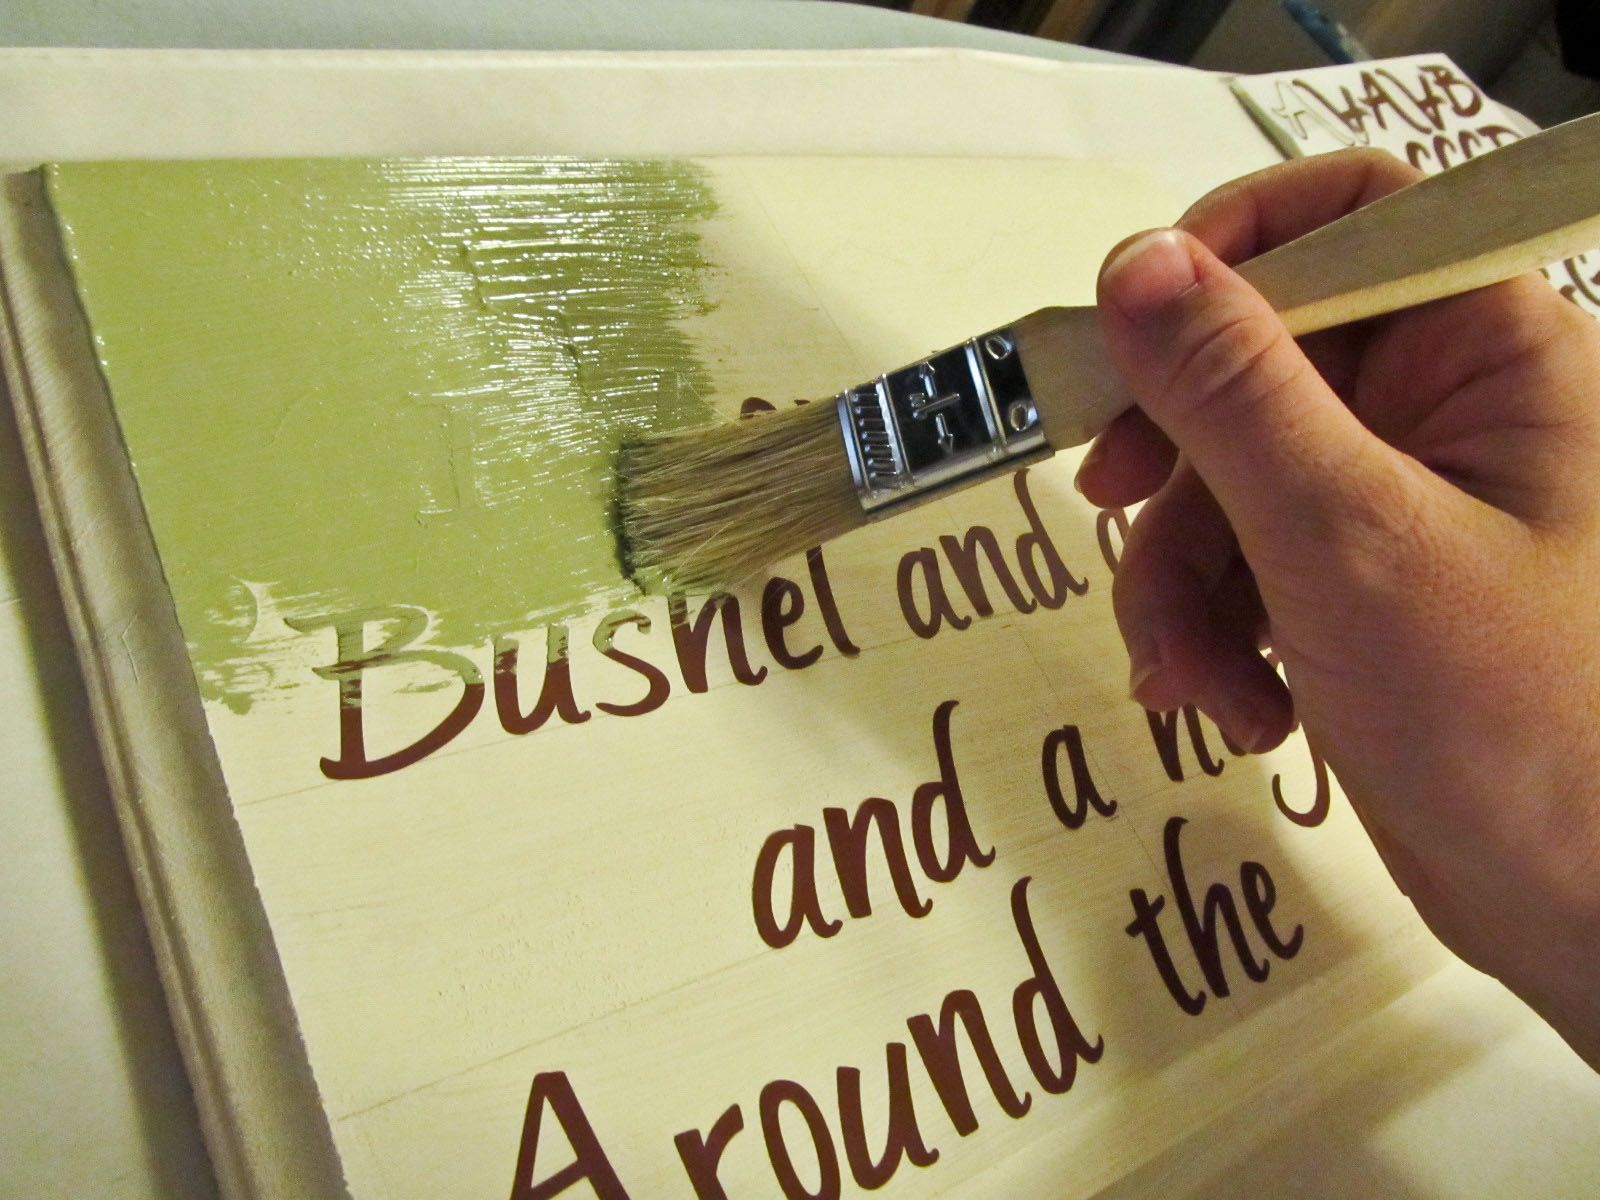 place sticker letters on wooden sign, paint, then peel off stickers. much easier than handwriting!